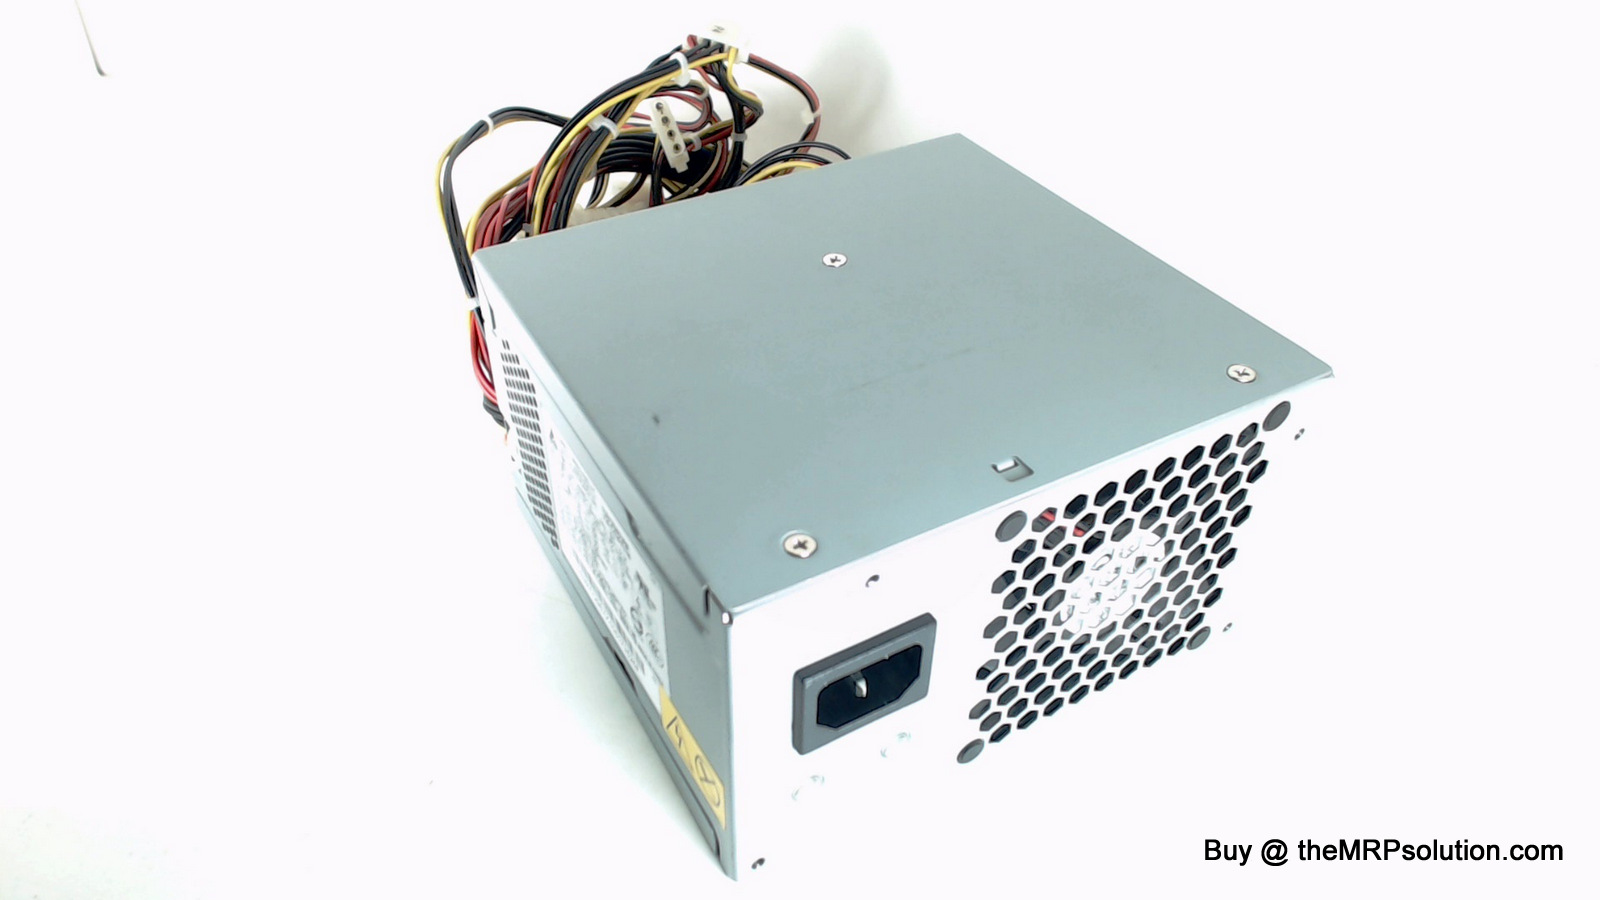 IBM 39Y7296 POWER SUPPLY, 400W New